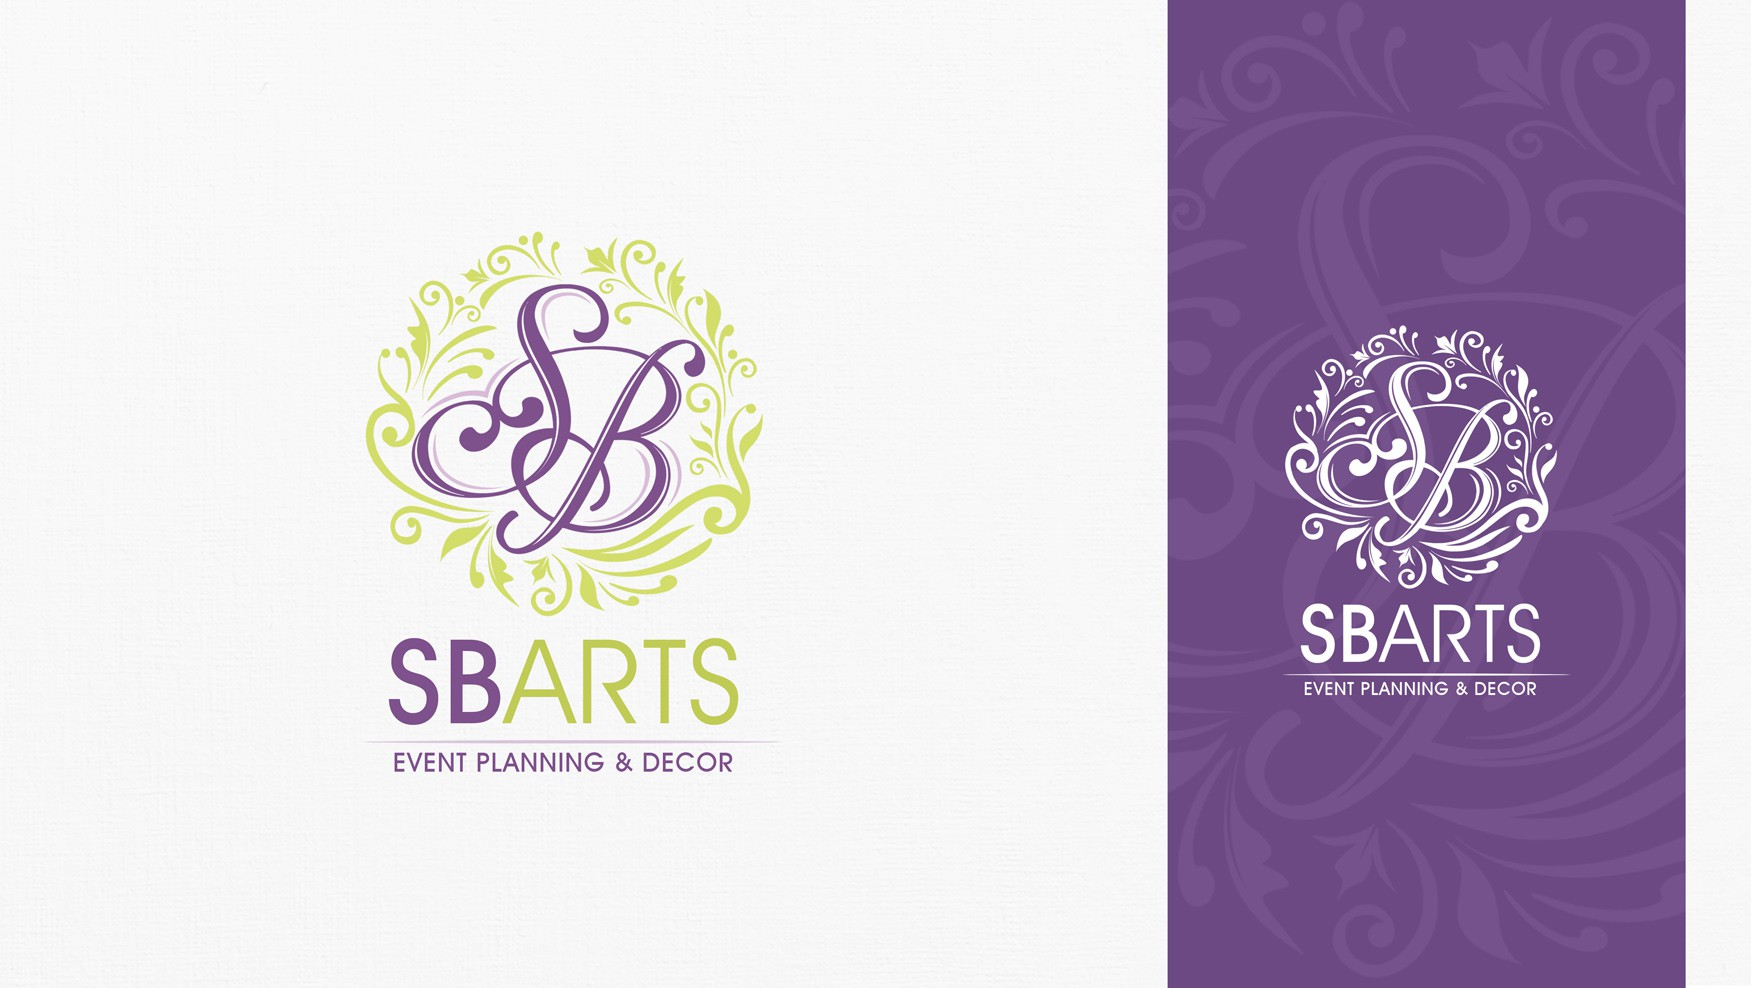 Create a logo that is strong yet feminine for a full production events company.